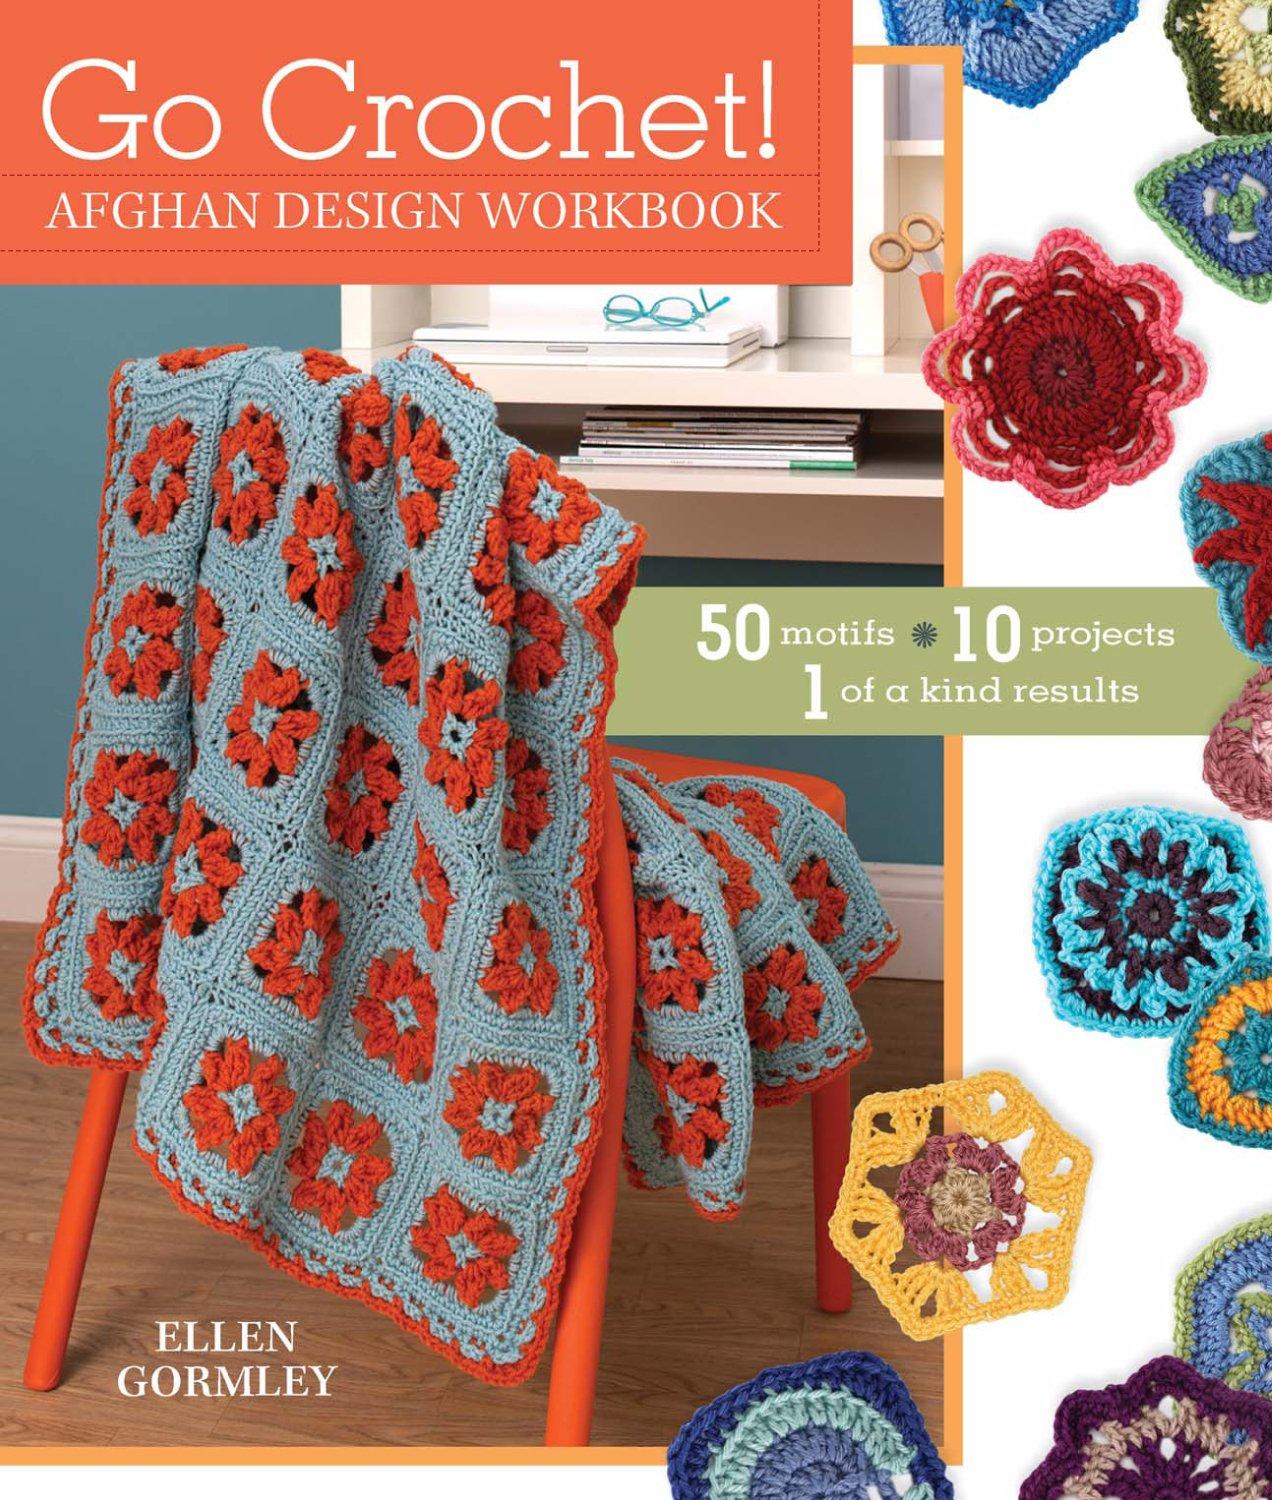 Go Crochet Afghan Design Workbook 50 Motifs 10 Projects 1 Of A Diagram Patterns Crocheted Love Copy Kind Results Ellen Gormley 9781440209079 Books